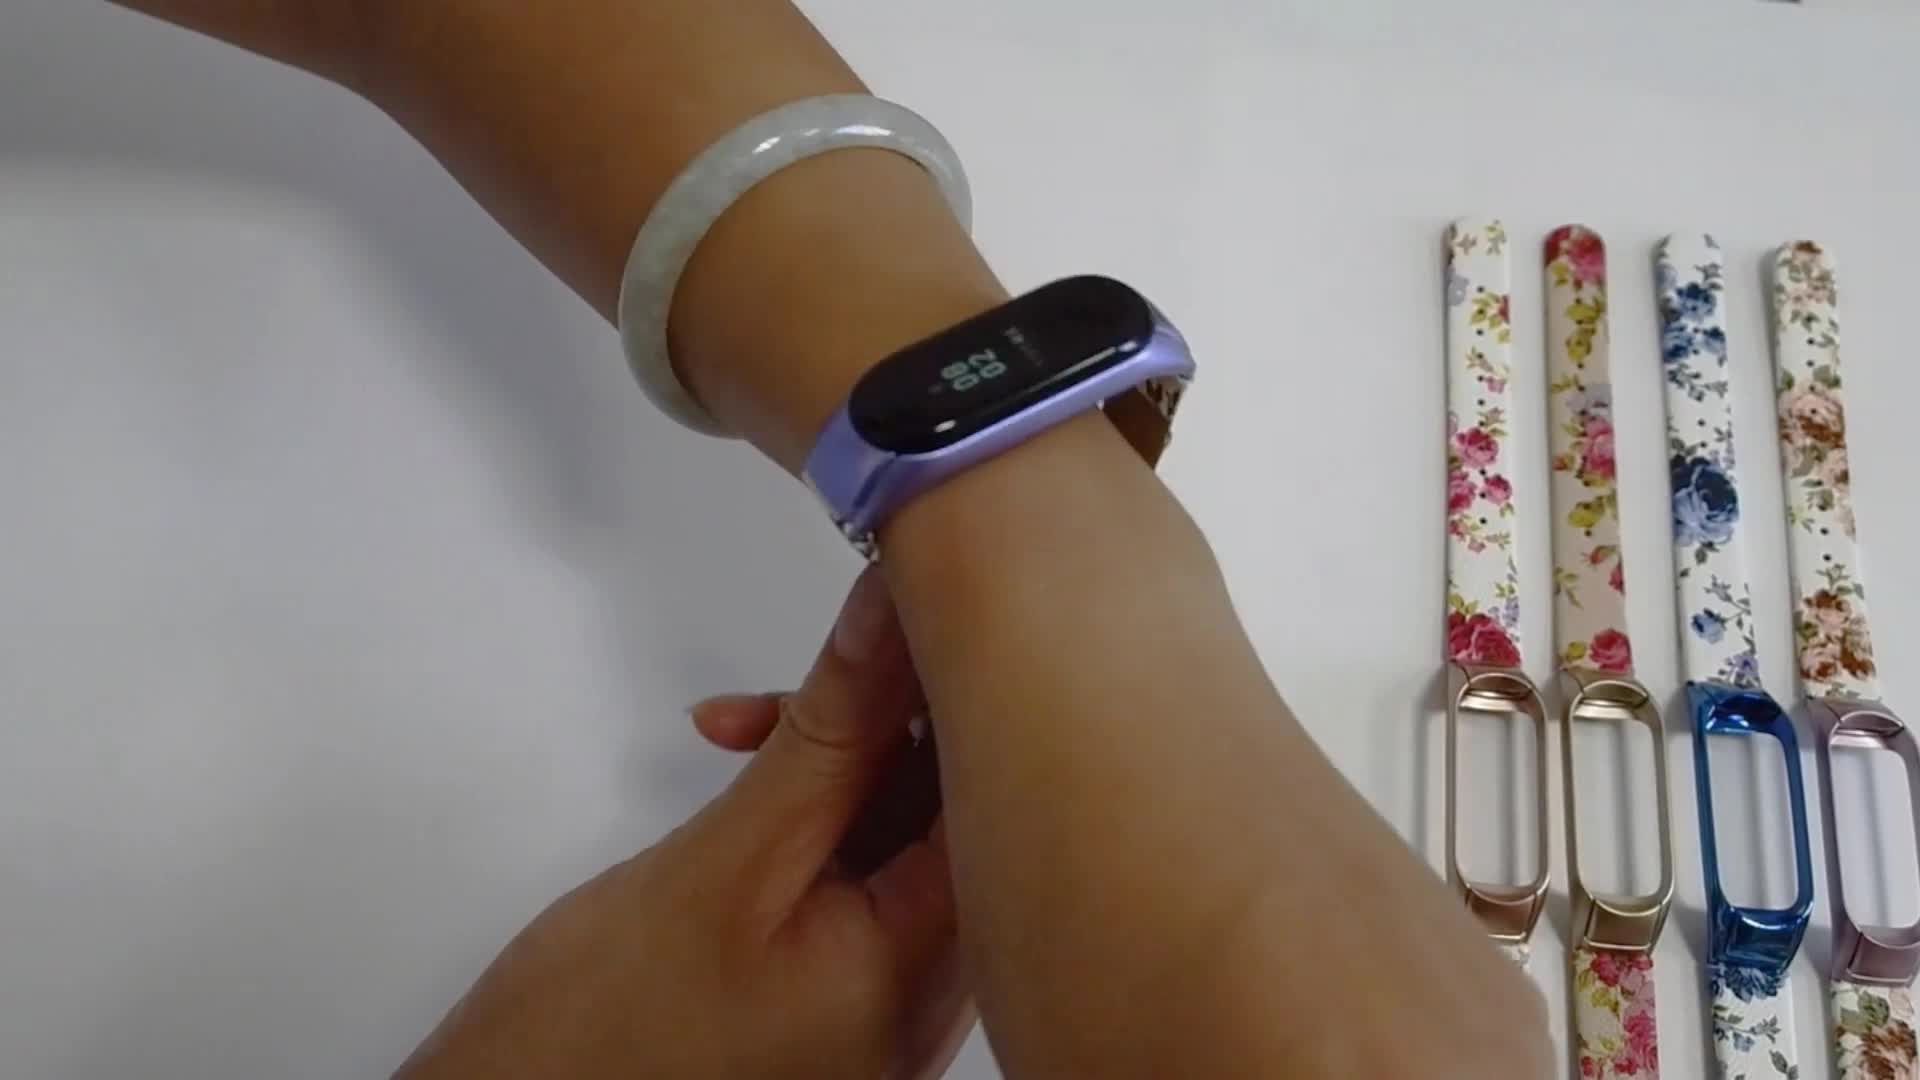 LIMITED EDITION 43012 flower series chinese style smoke purple color leather watch strap for xiaomi mi band 4 and 3